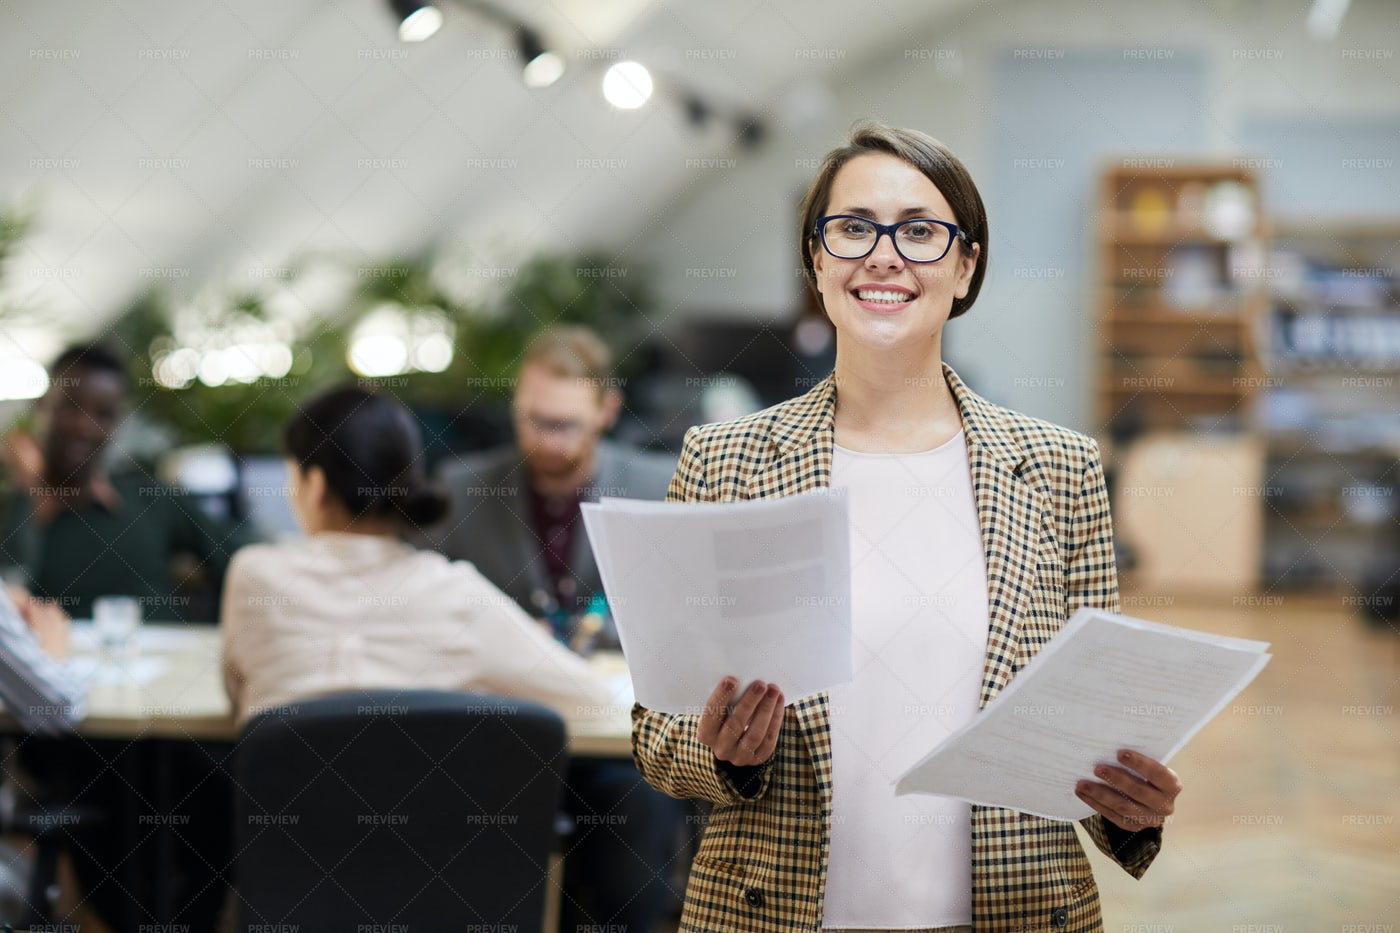 Smiling Businesswoman Posing In...: Stock Photos